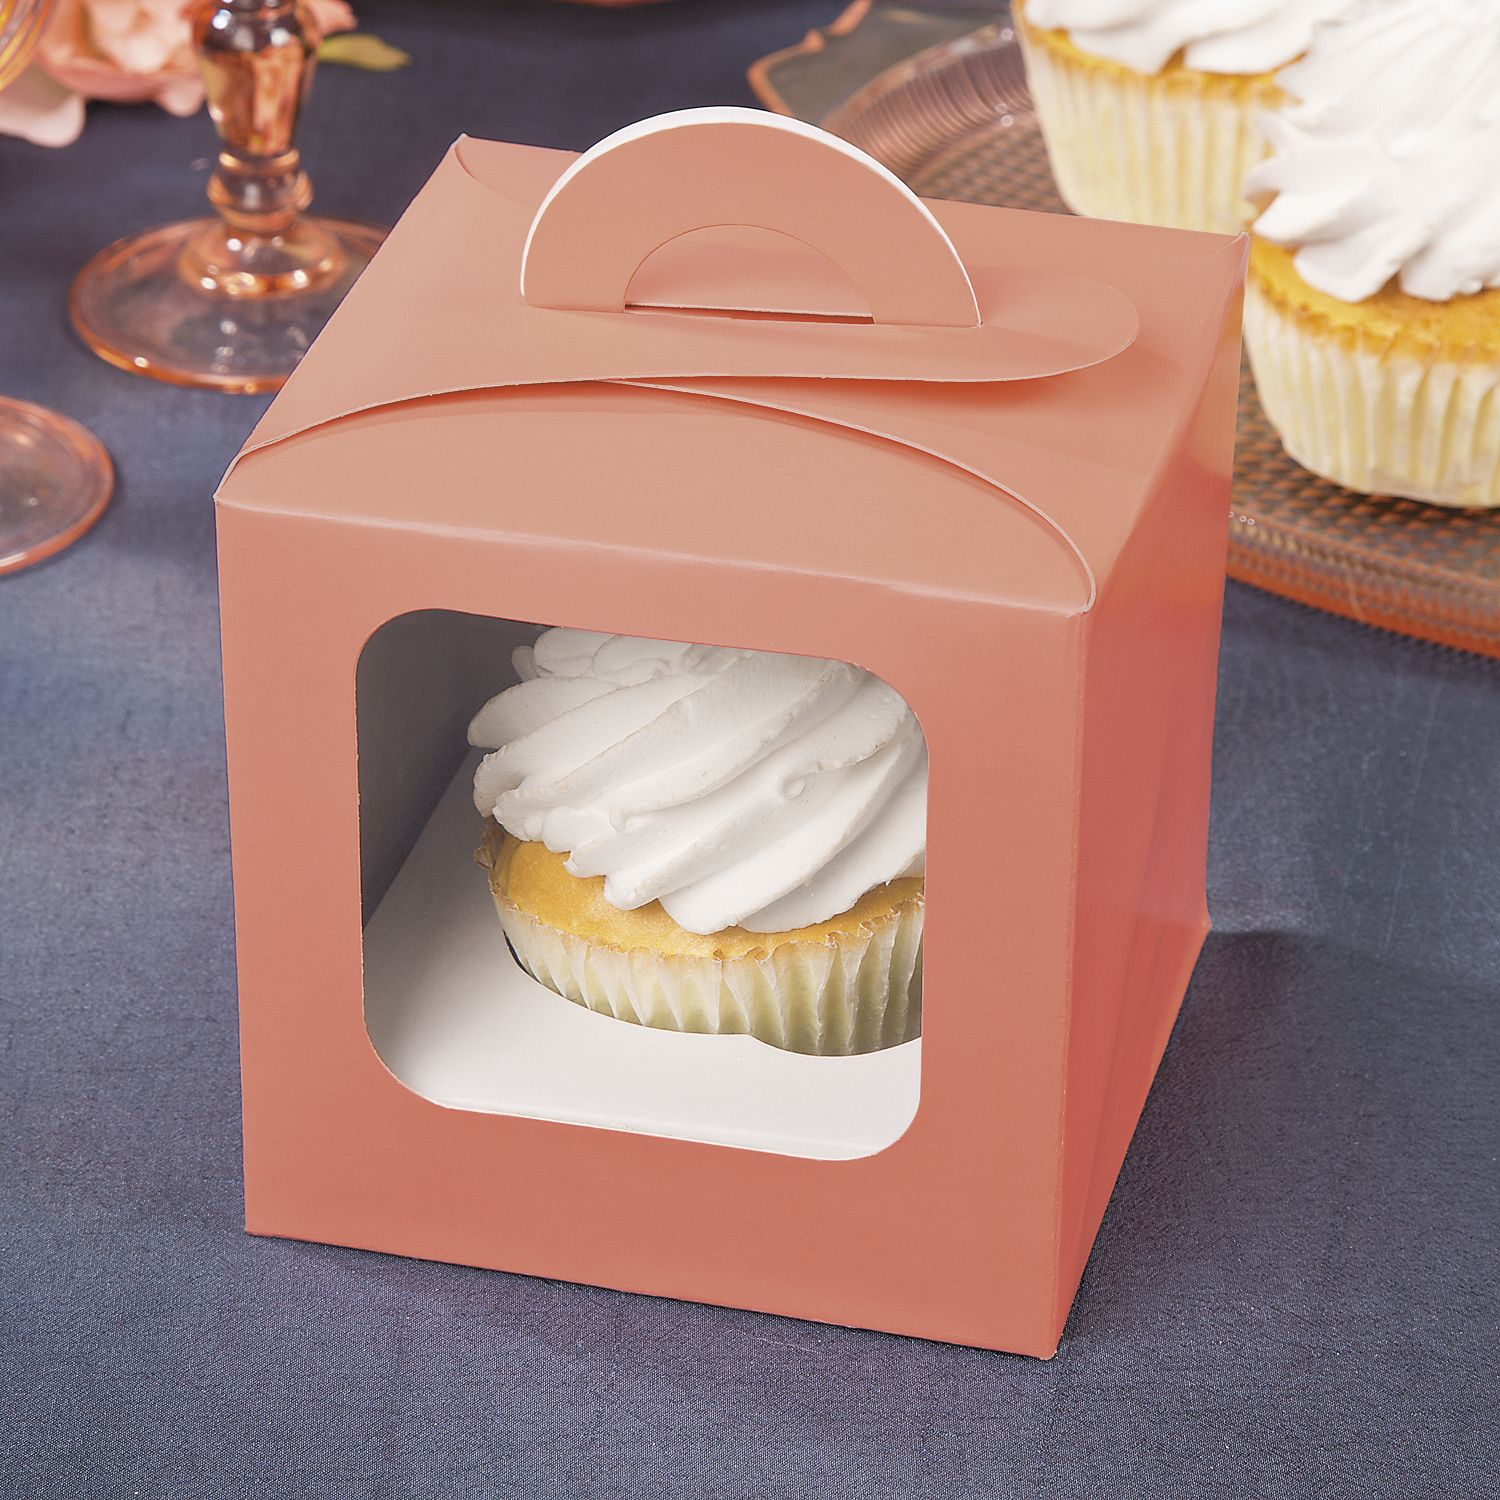 Coral Cupcake Boxes With Handle Coral Cupcakes Cupcake Boxes Cupcake Template